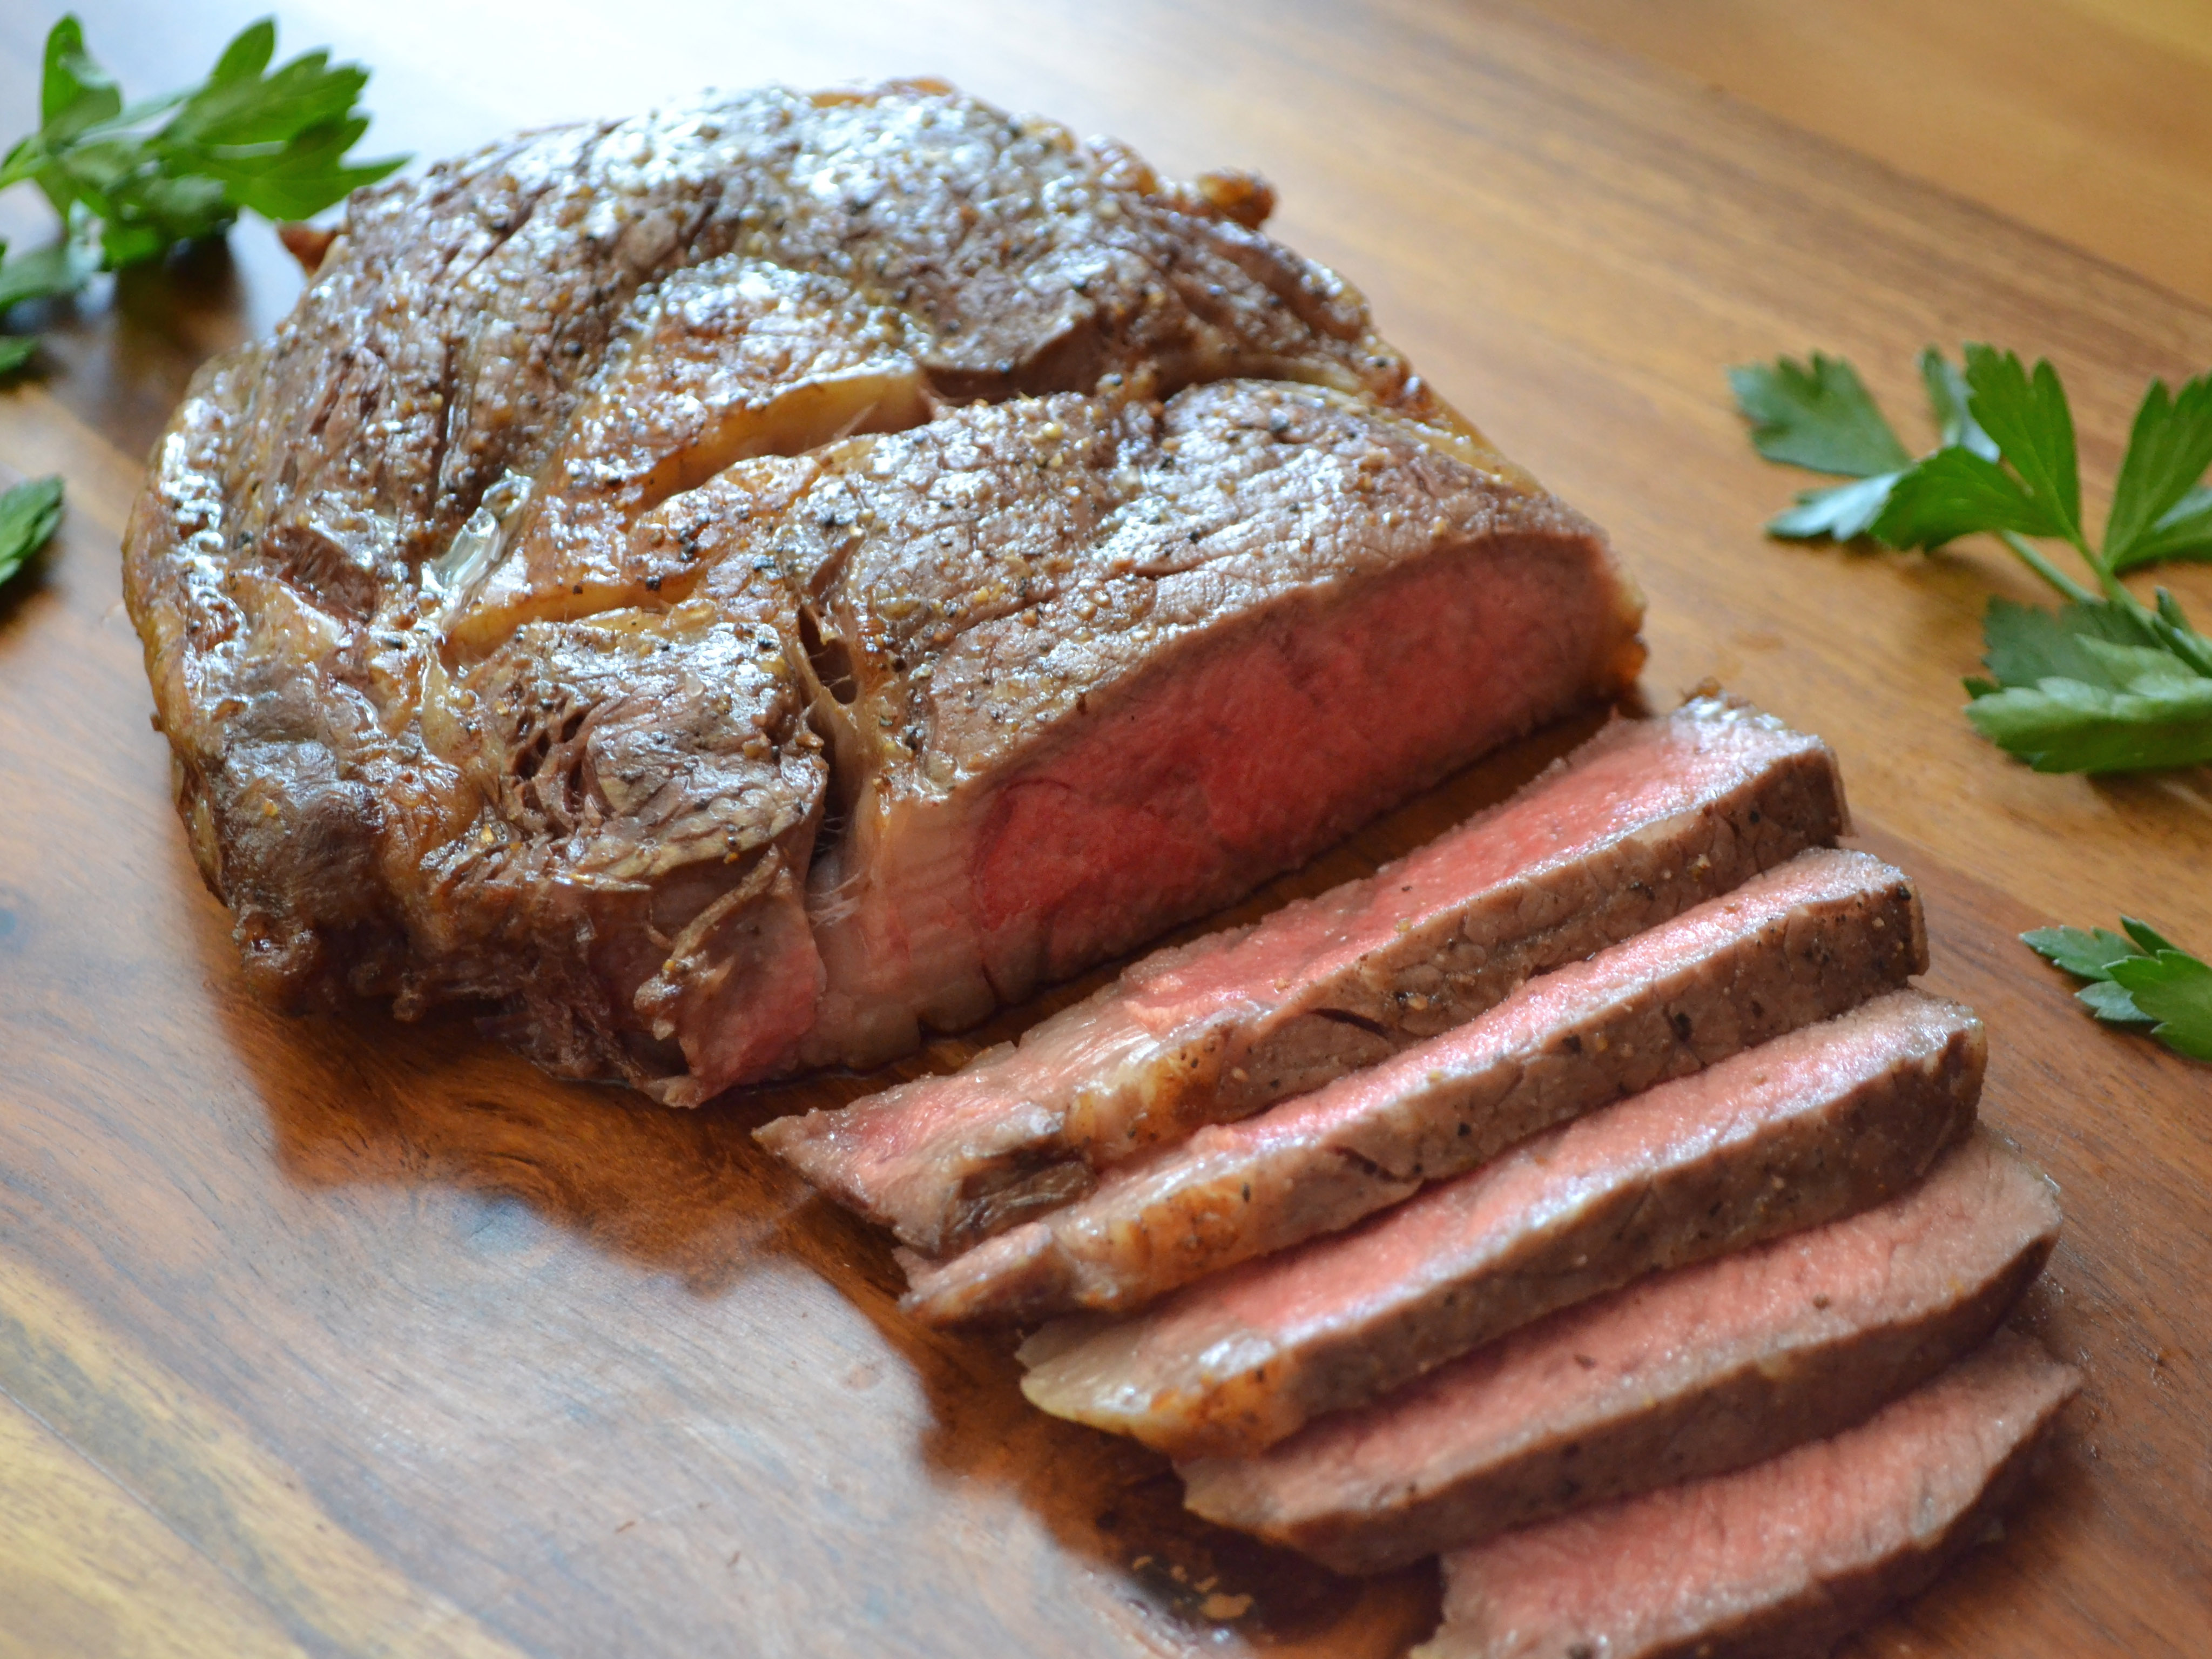 Pictures Of Cooked Meat How To Cook The Perfec...